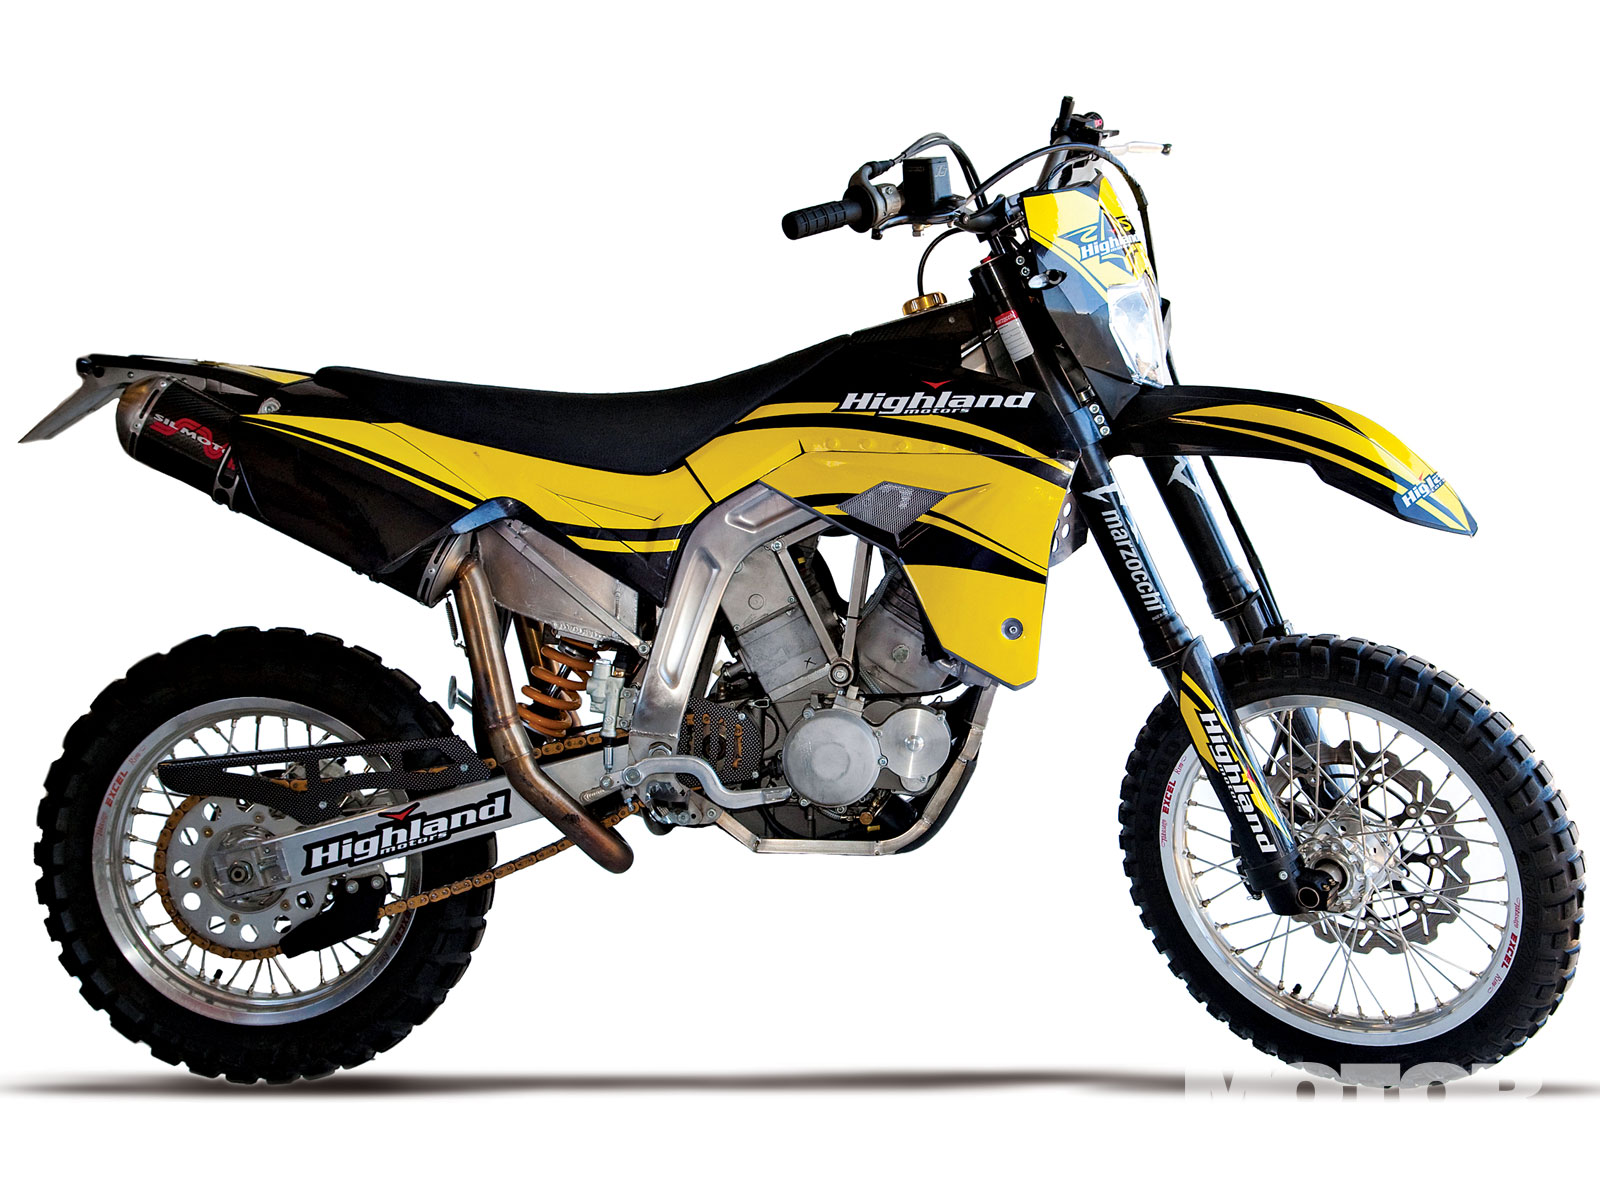 Highland 950 V2 Outback Supermoto 2005 images #97056